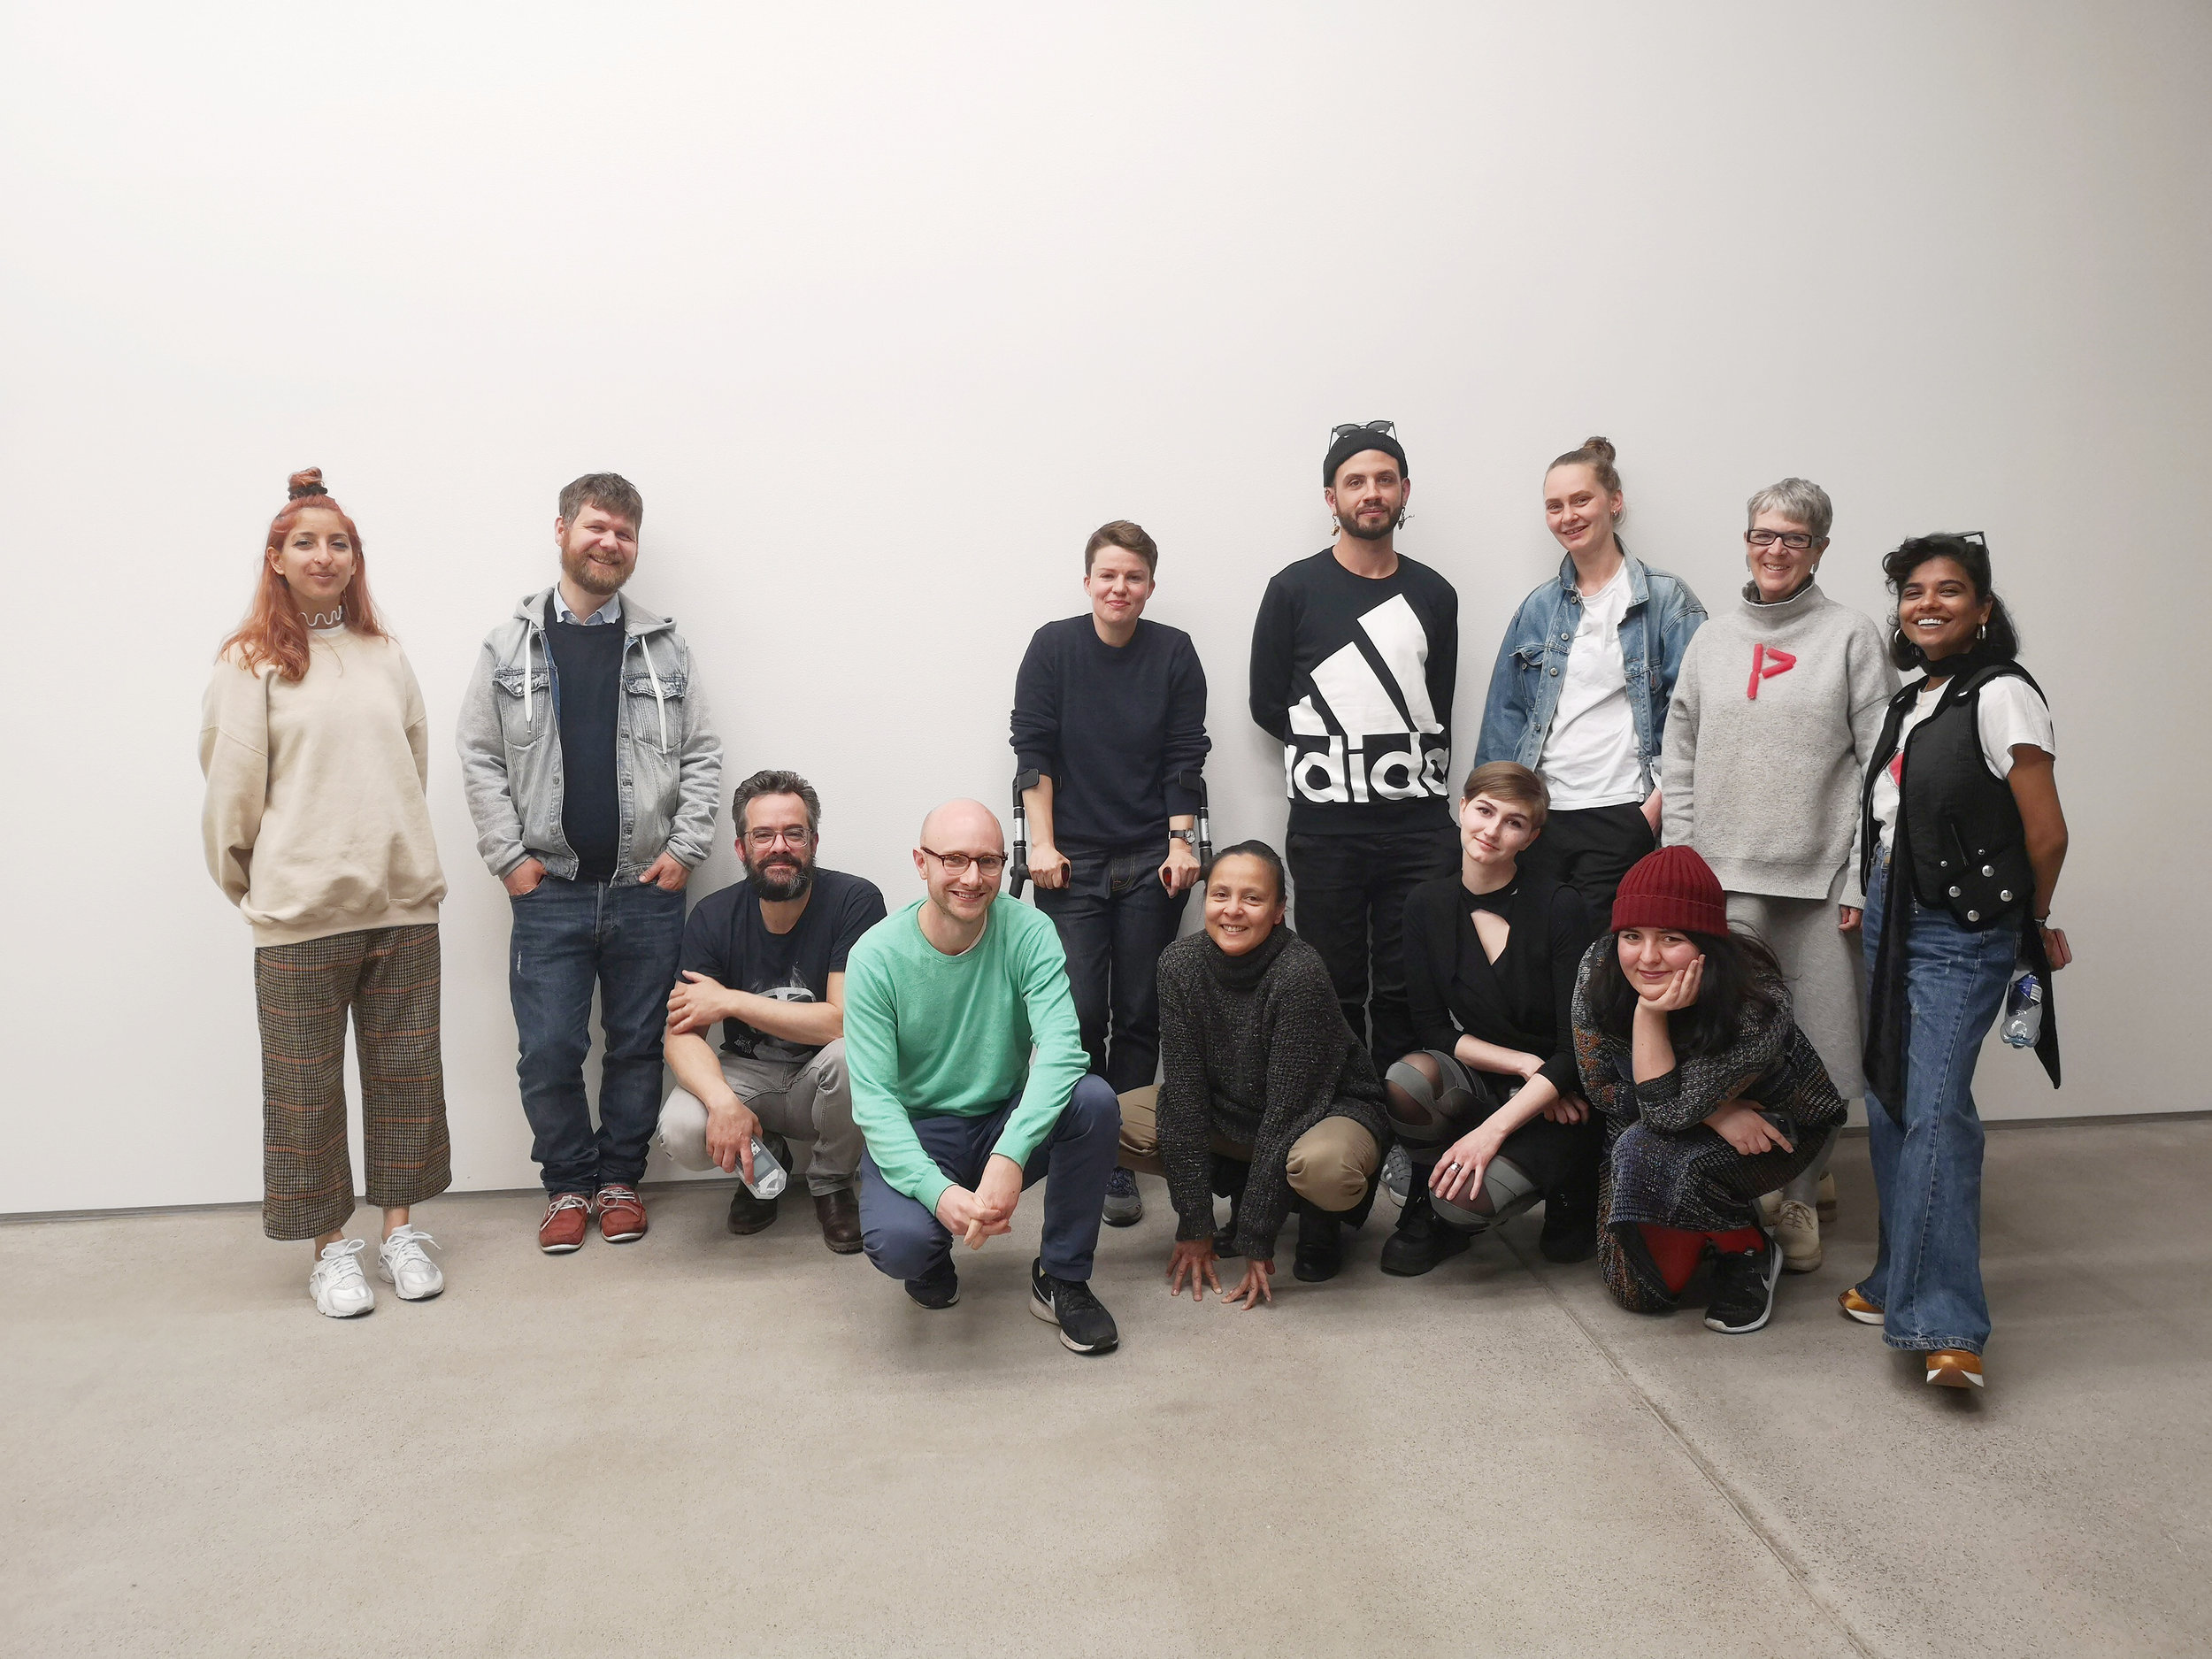 residents meet Sille Storihle at Kunsthall Oslo.jpg